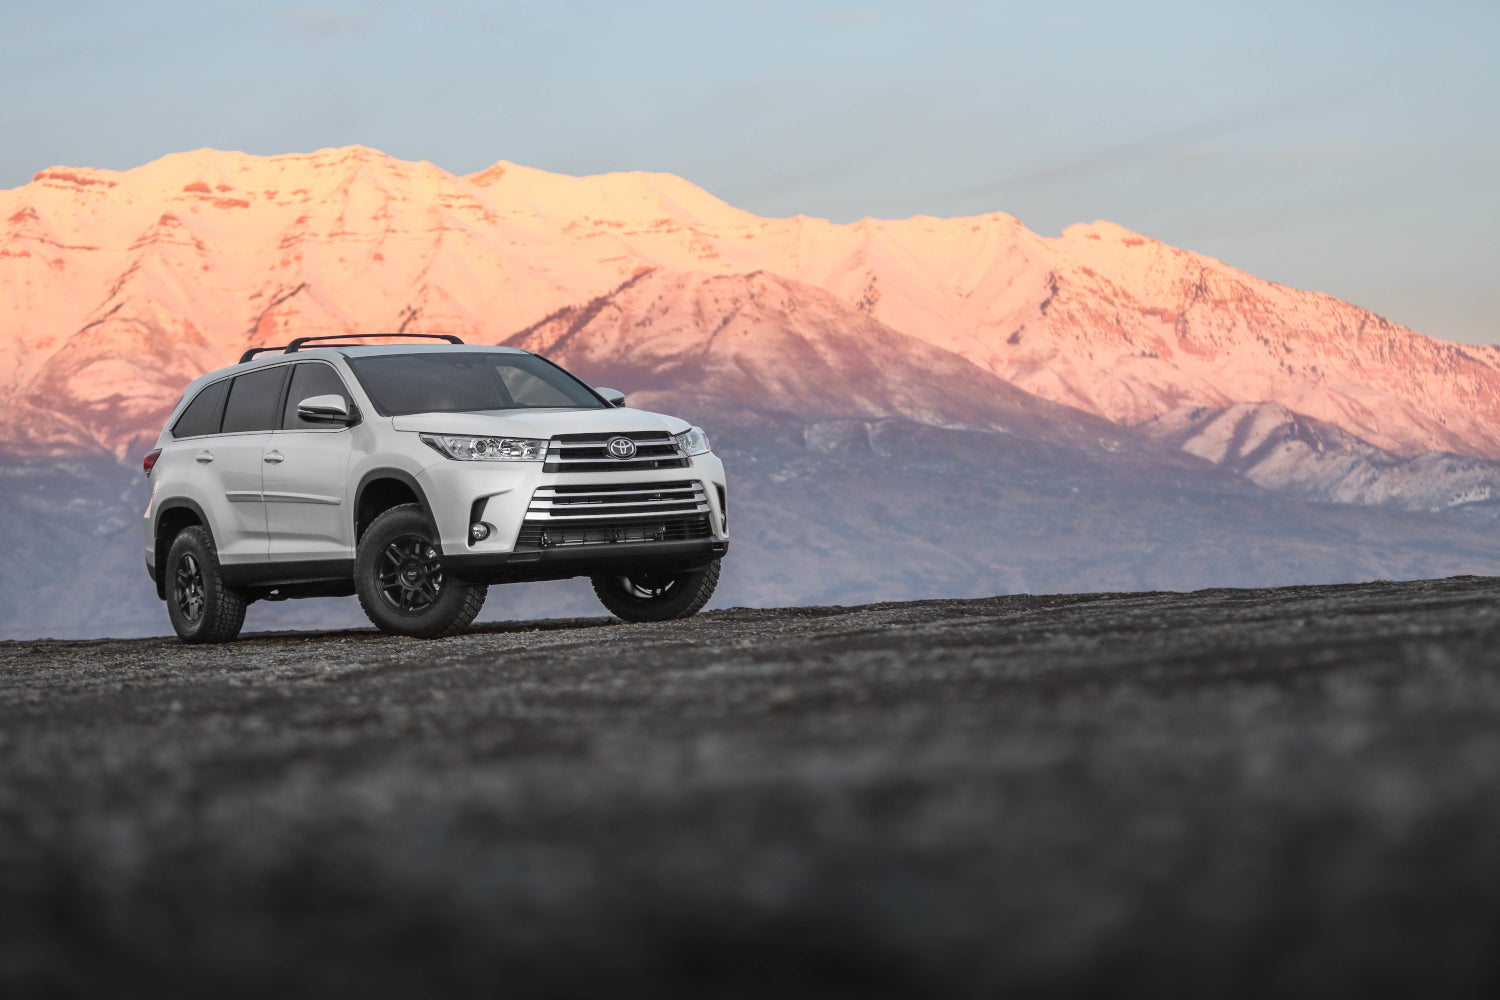 toyota highlander 2 lift kit 2018 2020 torq engineering llc toyota highlander 2 lift kit 2018 2020